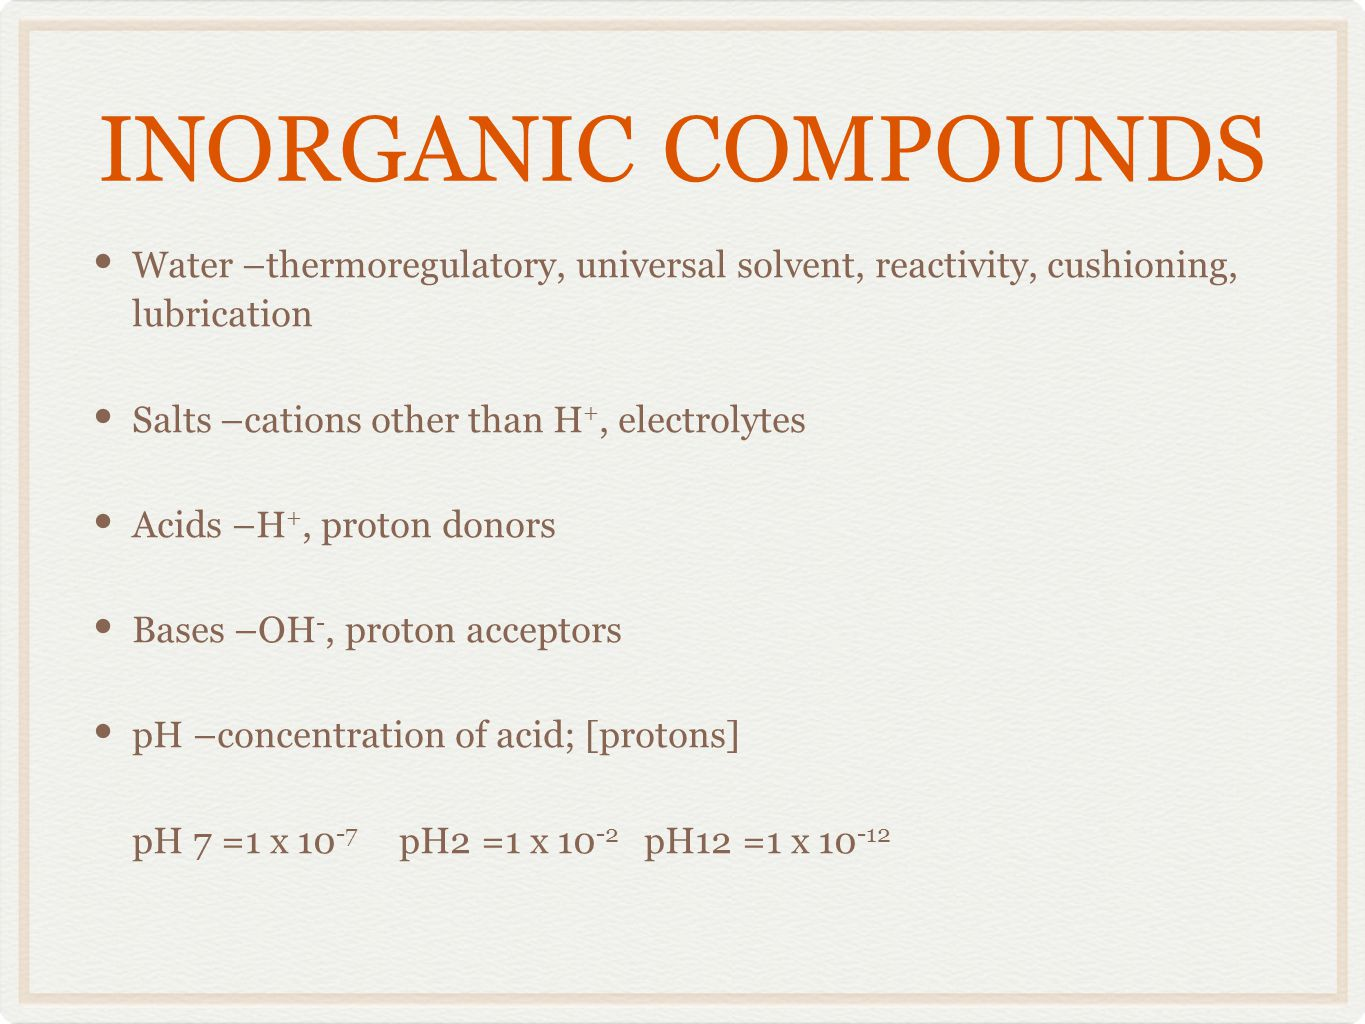 INORGANIC COMPOUNDS Water –thermoregulatory, universal solvent, reactivity, cushioning, lubrication.